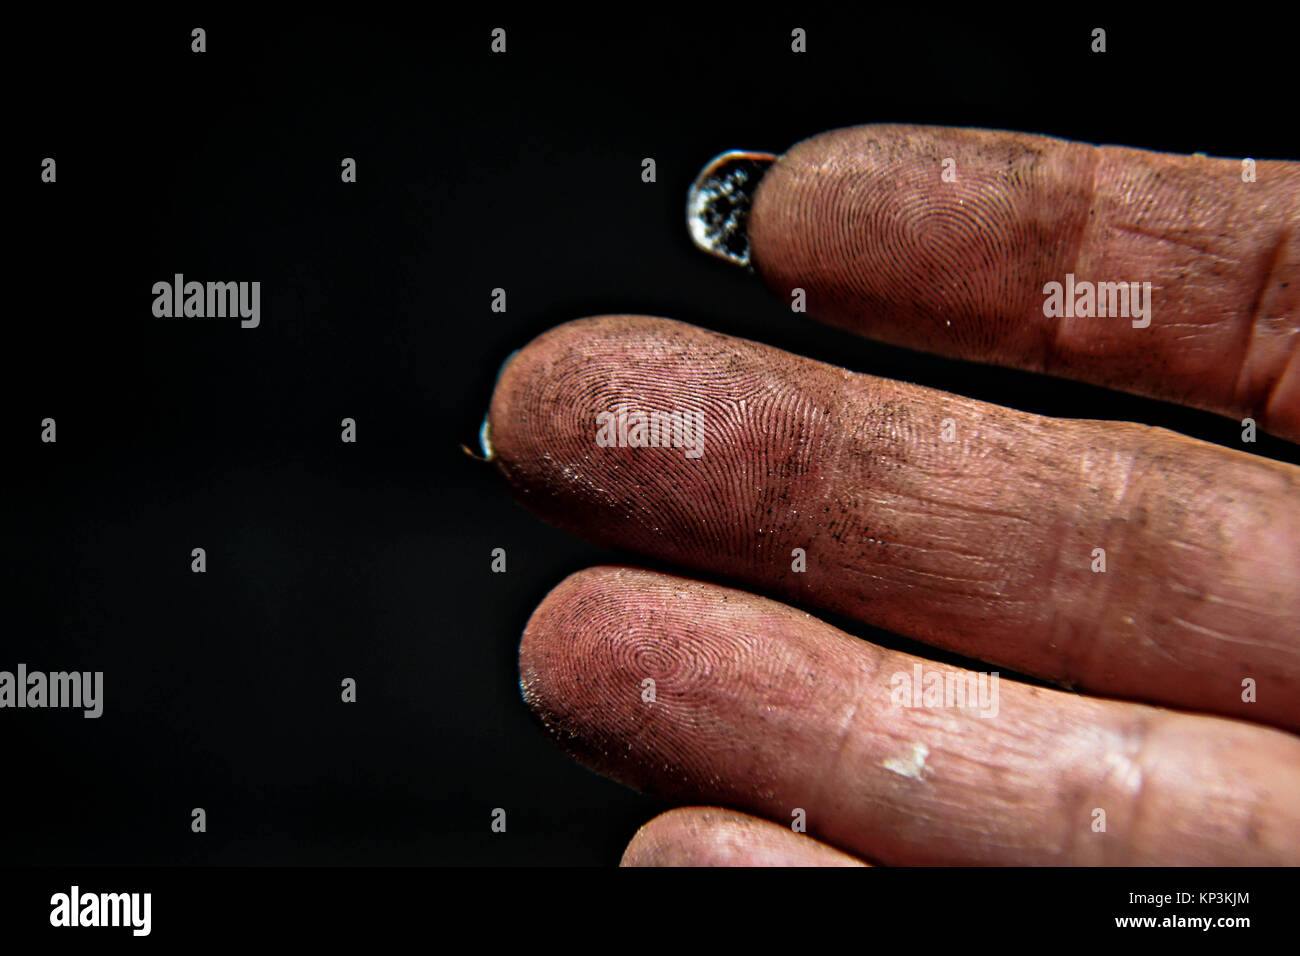 The forest soil on the hand with humus and nutrient for the plant - Stock Image